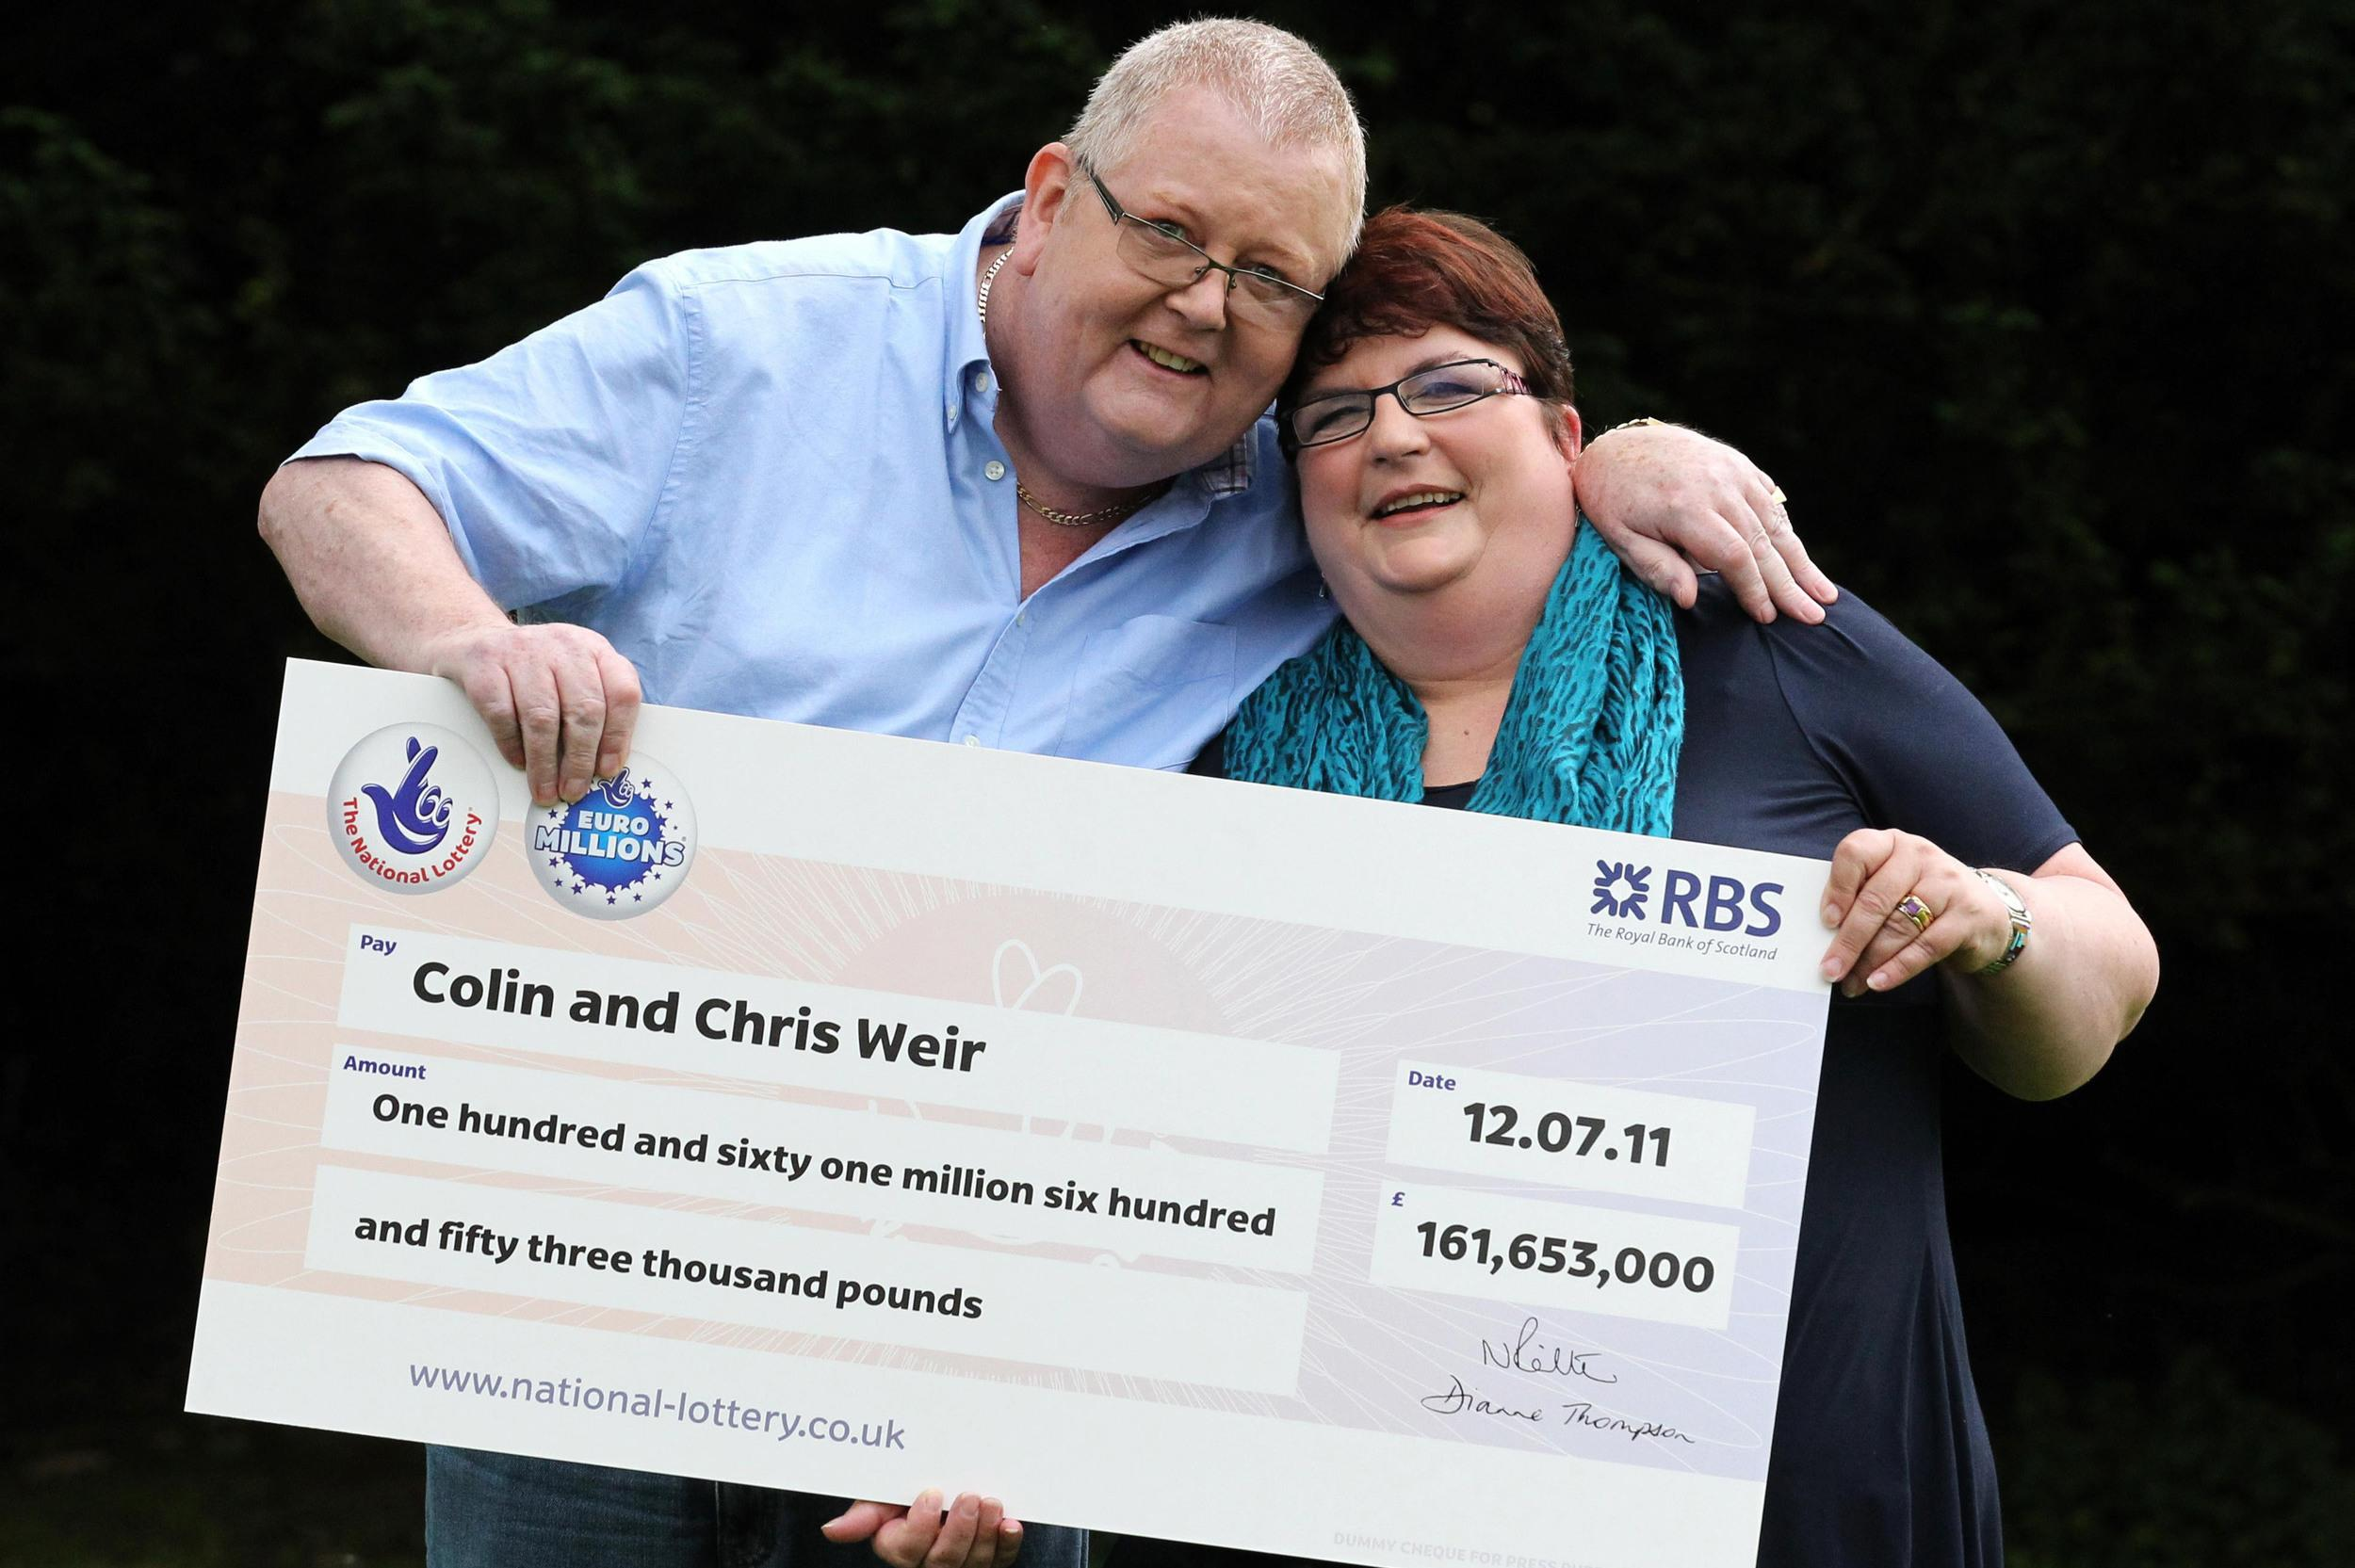 <p>Colin and Chris Weir, from Largs in Ayrshire scooped 161 million in the EuroMillions draw after several rollovers in 2011. They arethe biggest British lottery winners in history.</p>  <p></p>